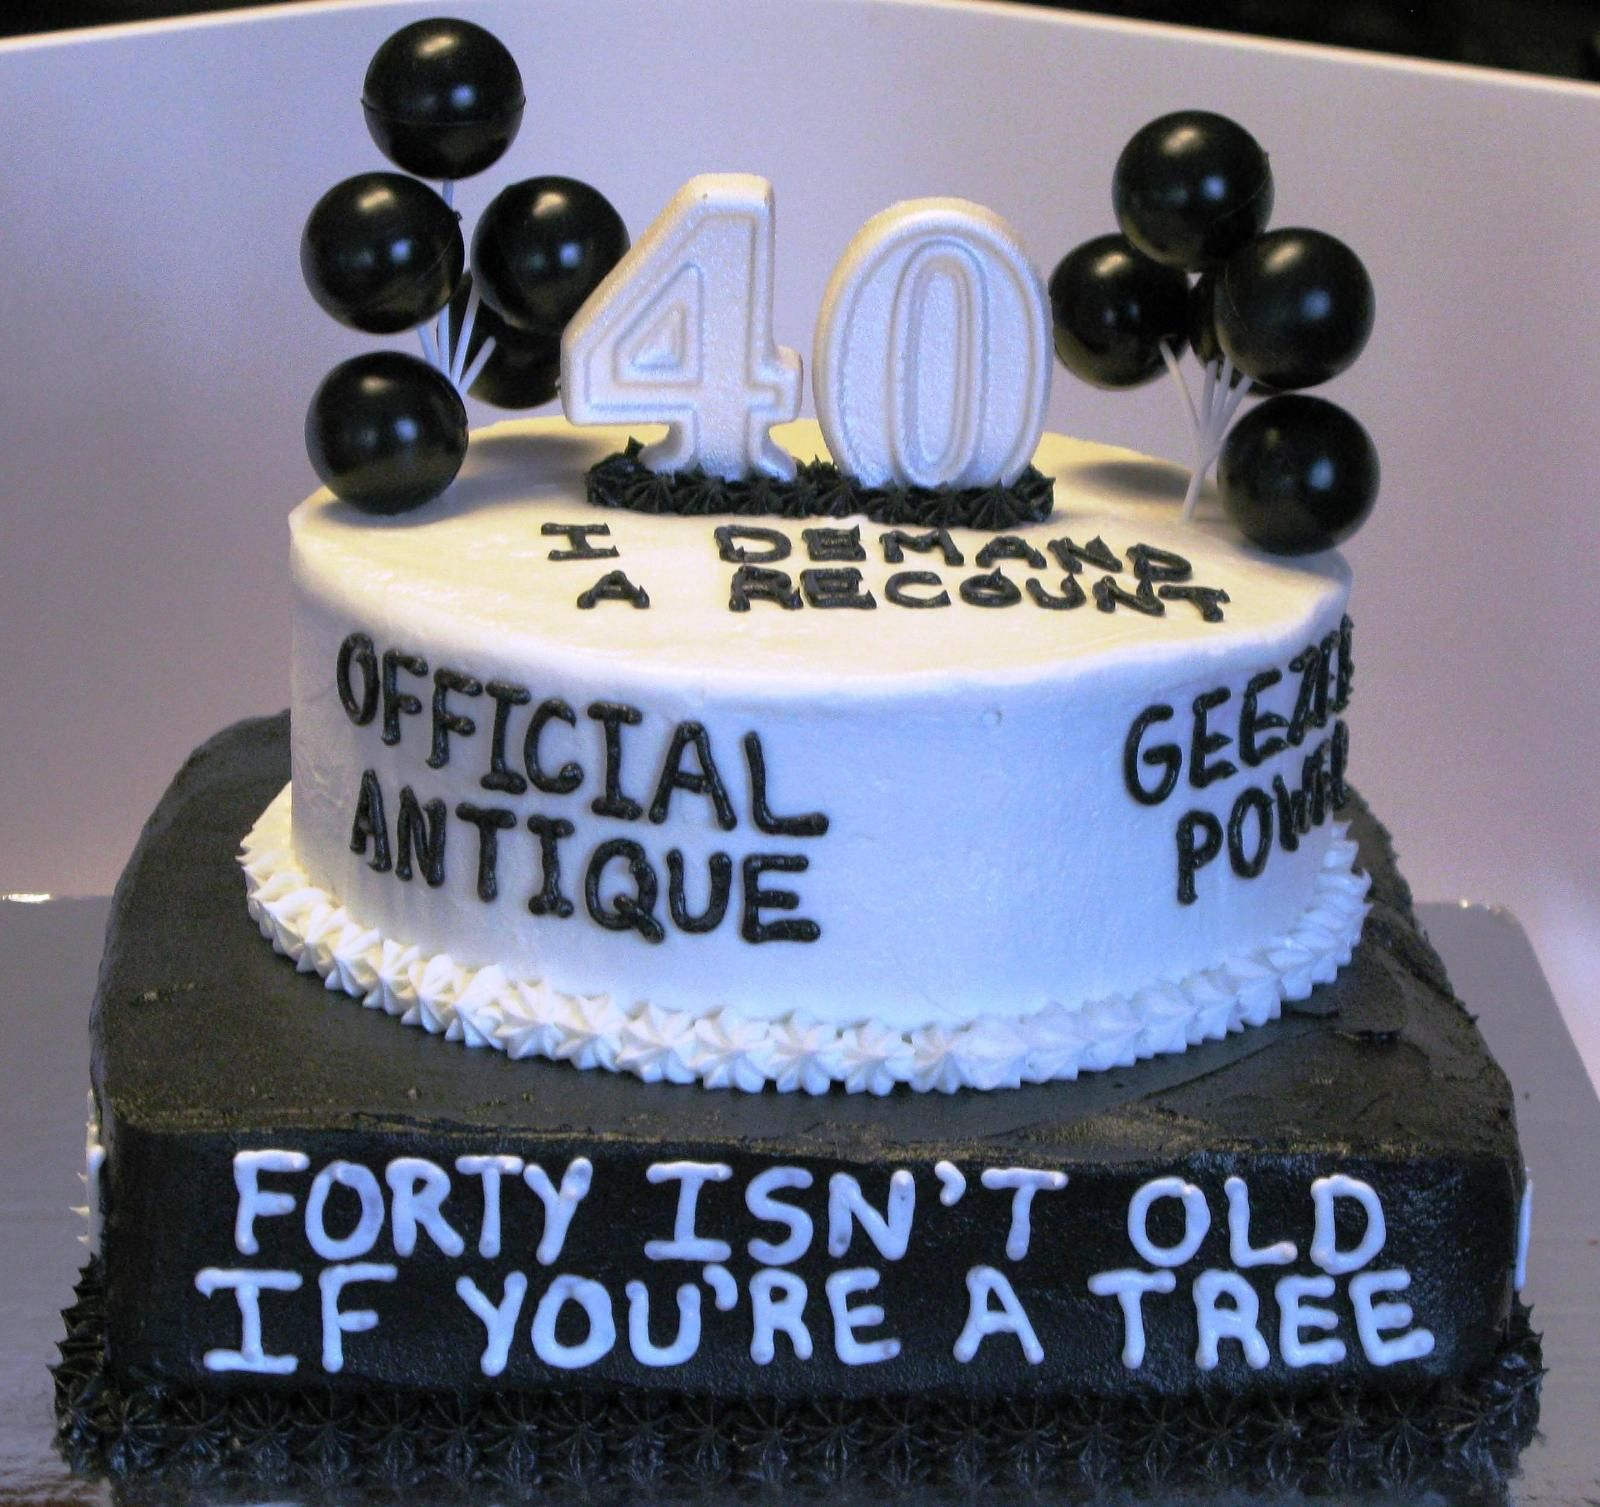 40th Birthday Cake Ideas Funny 40th Birthday Cake Ideas And Recipes For Men Some Enjoyabl Funny Birthday Cakes Birthday Cakes For Men Birthday Cake For Him